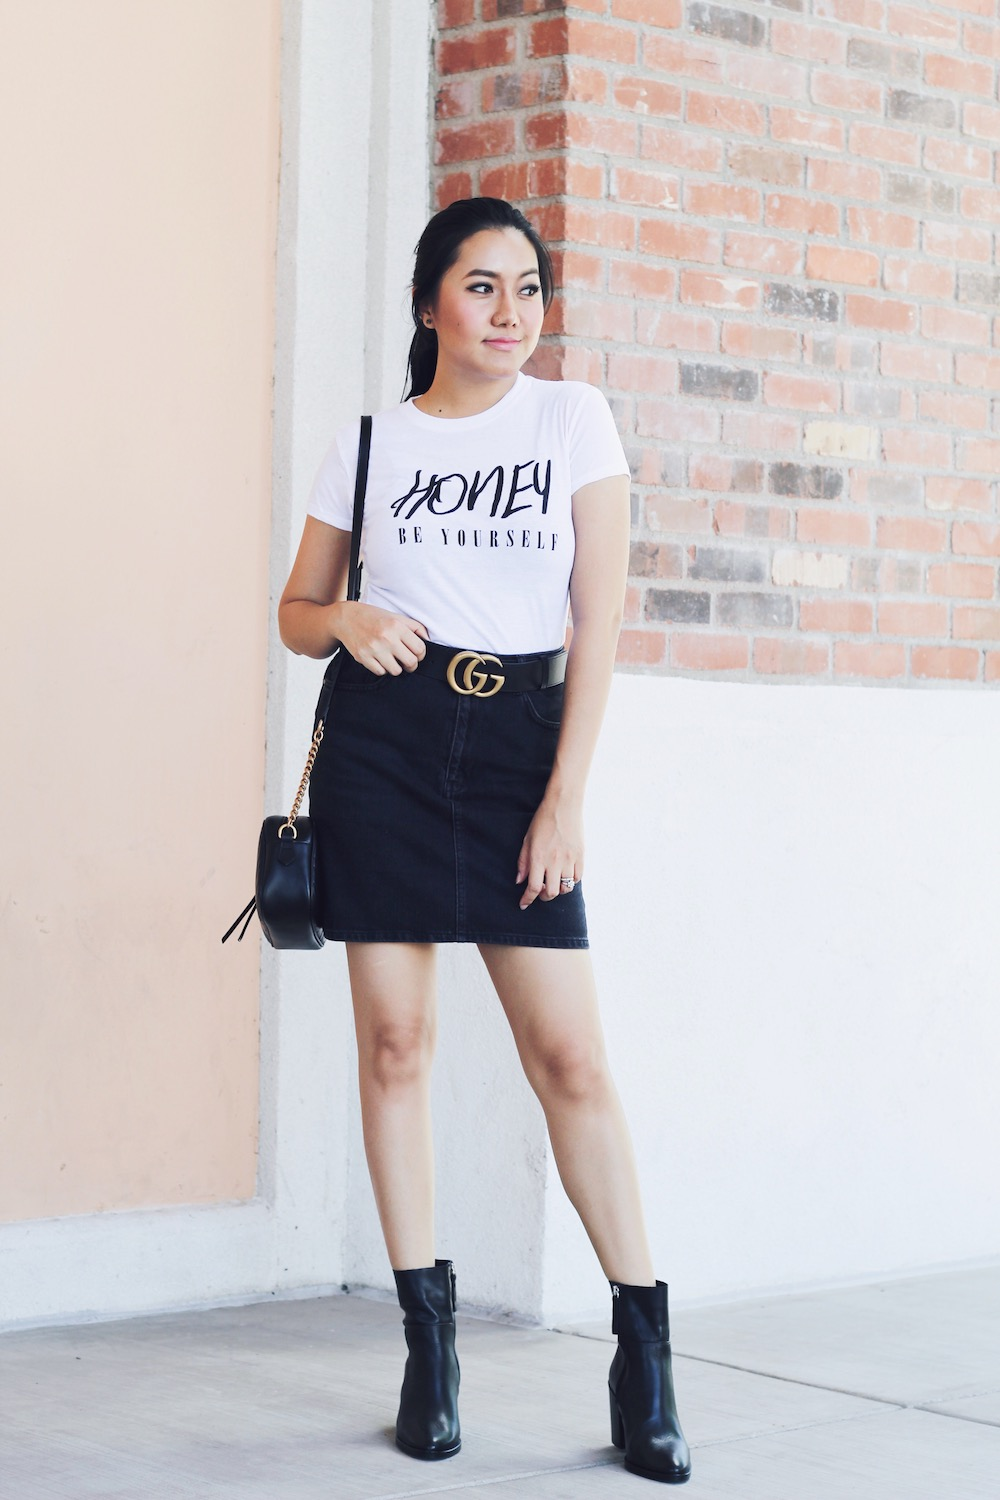 Cheap-Slogan-Women-Graphic-Tee-Black-and-Gold-Honey-Be-Yourself